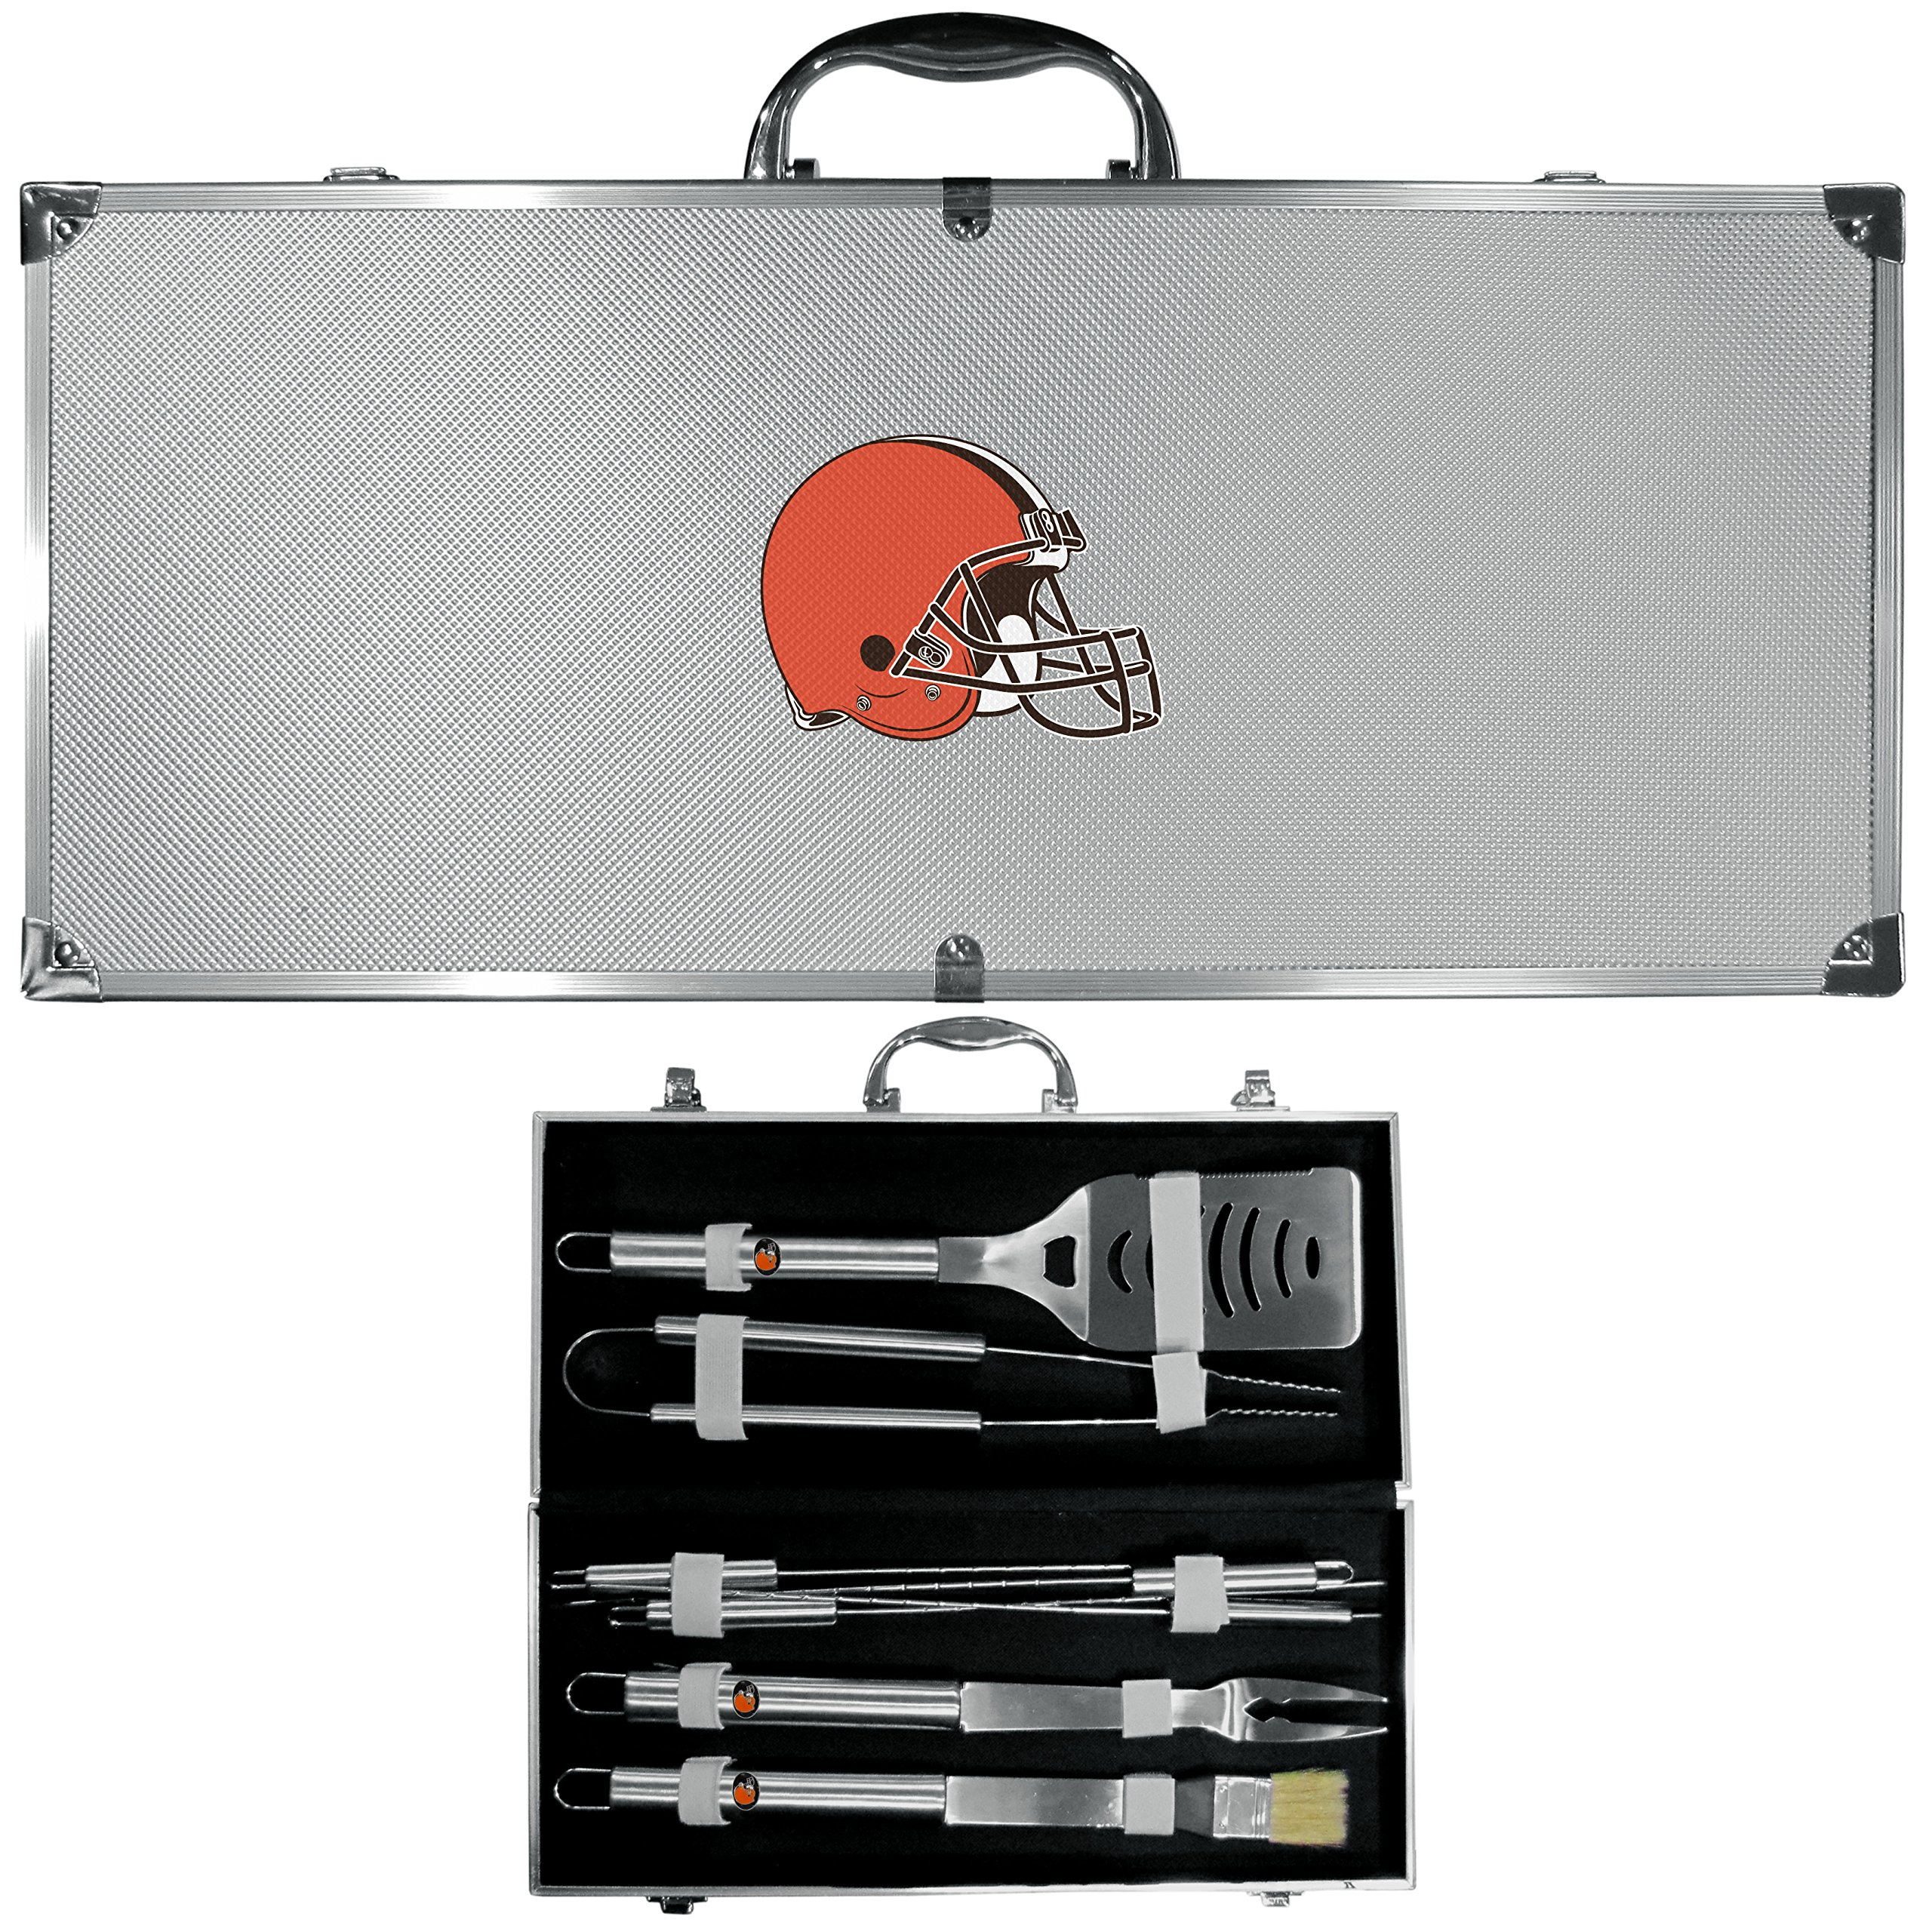 Siskiyou NFL Cleveland Browns 8-Piece Barbecue Set w/Case